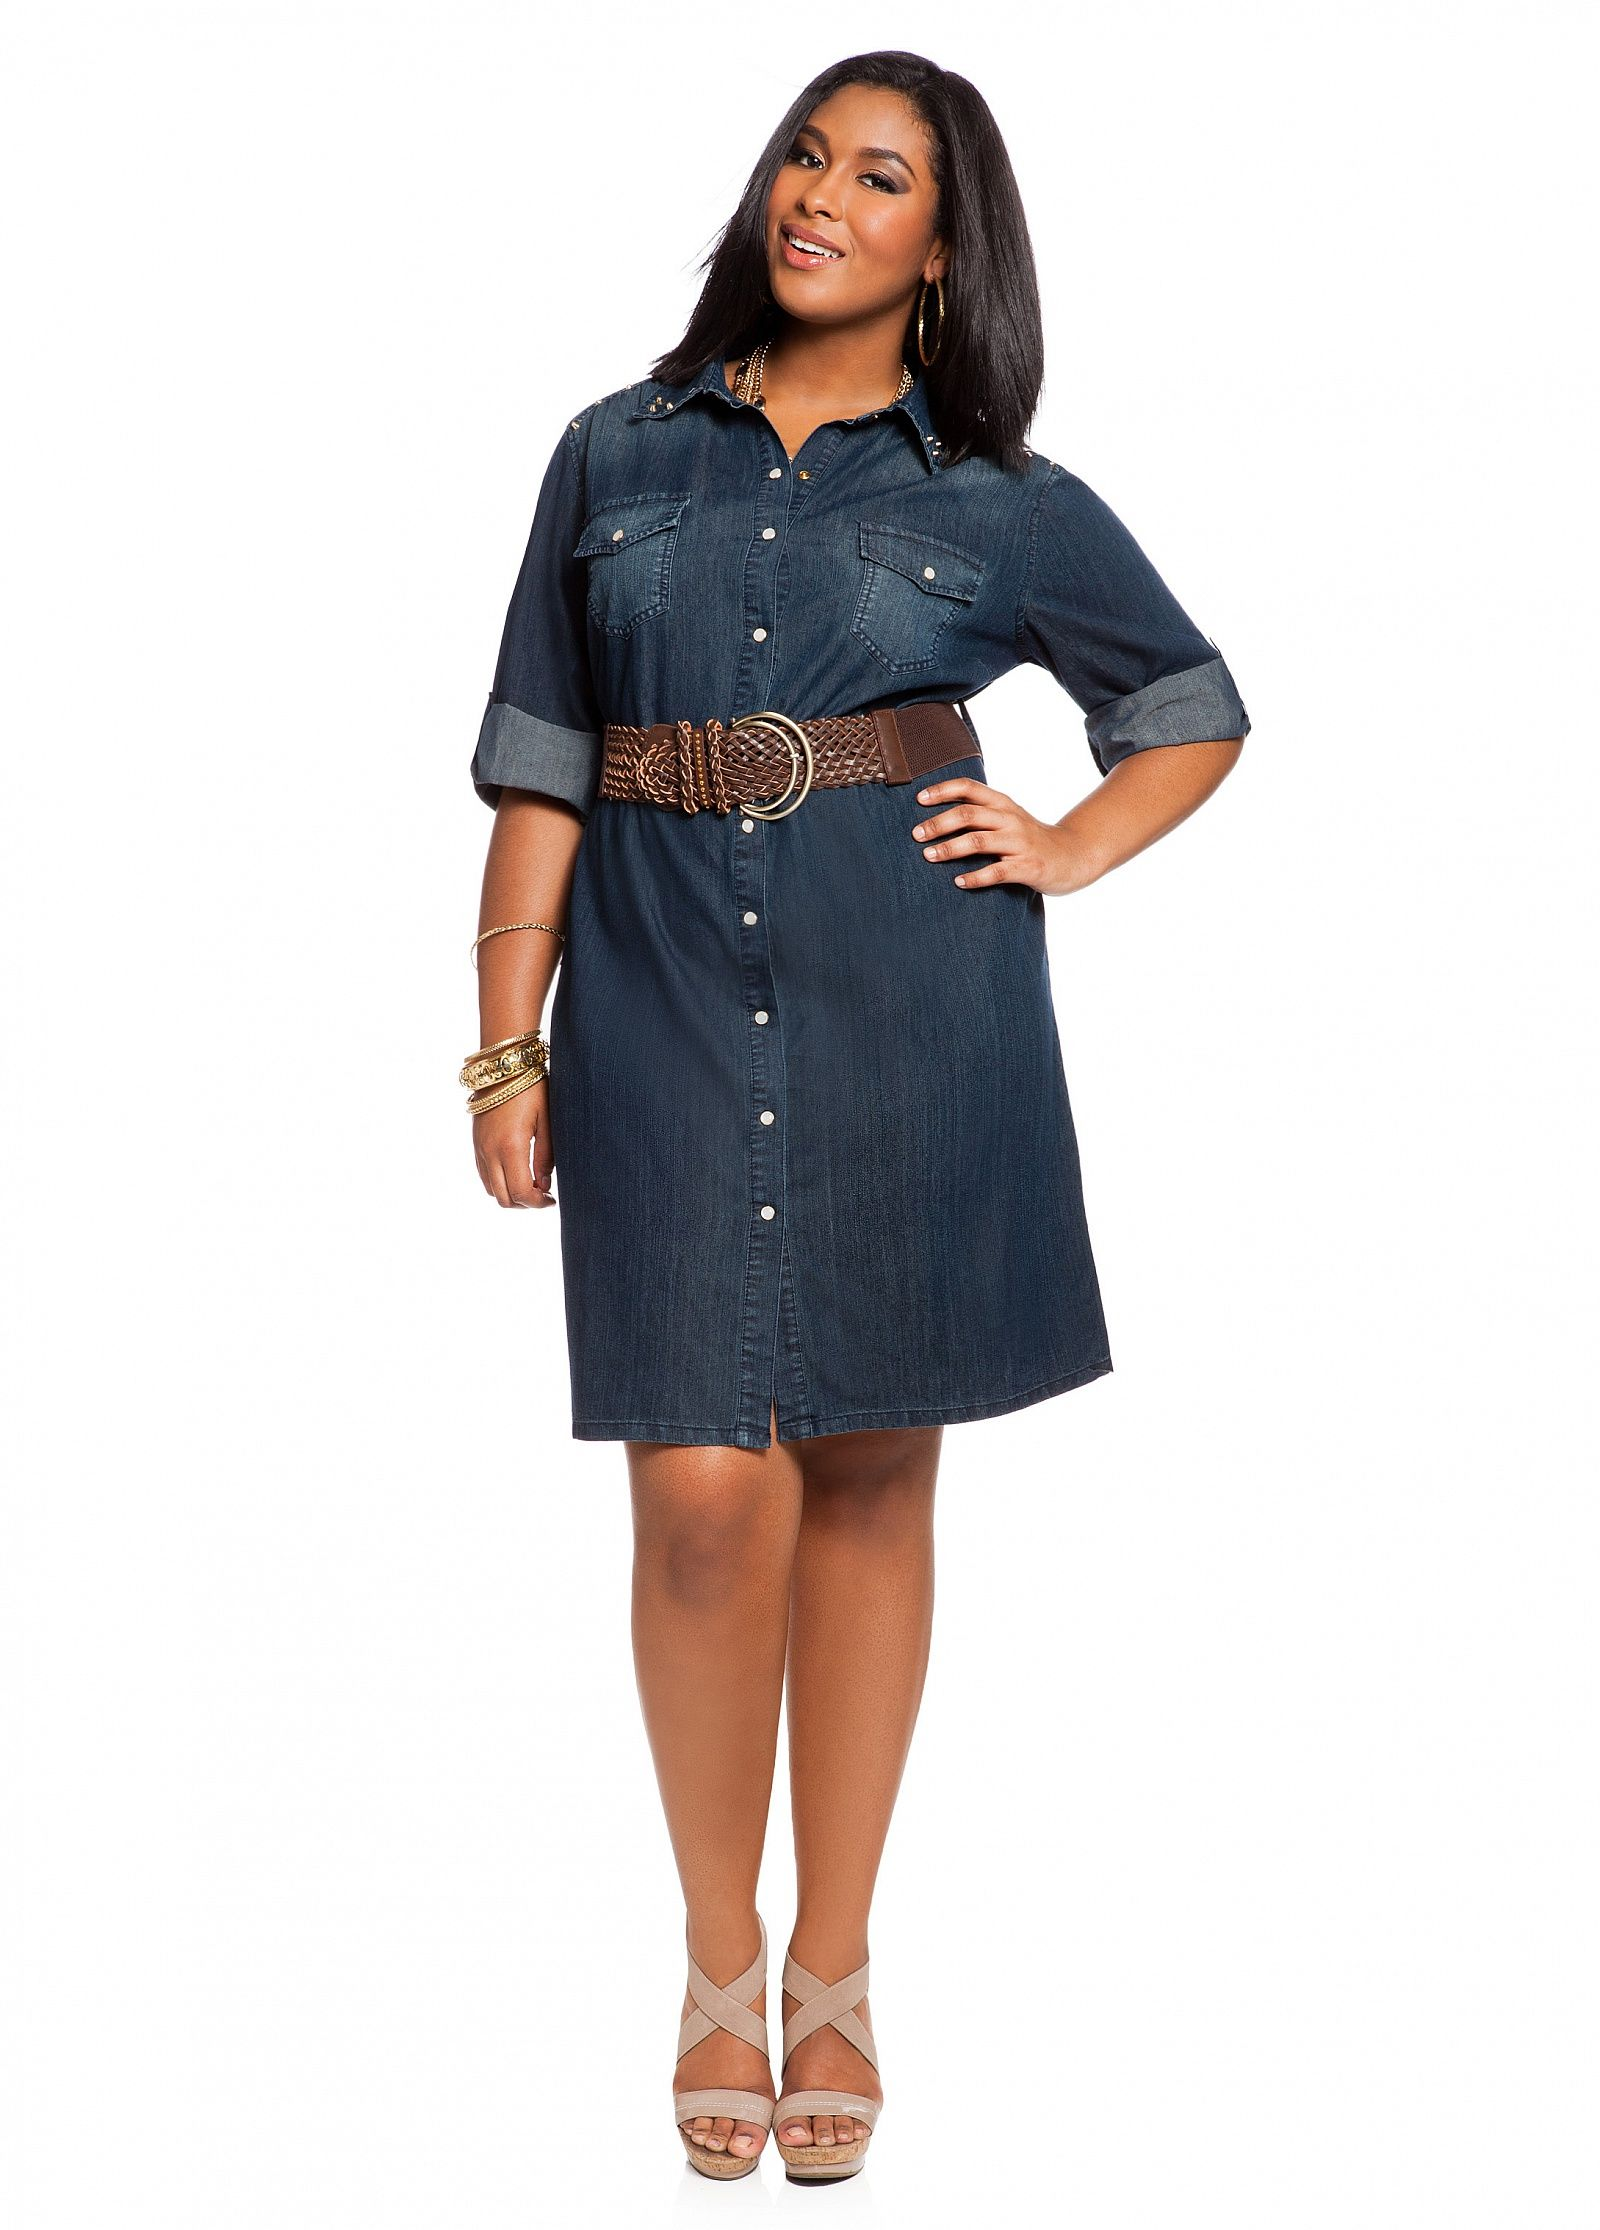 Ashley Stewart: Denim Shirt Plus Size Dress | Best Dressed ...